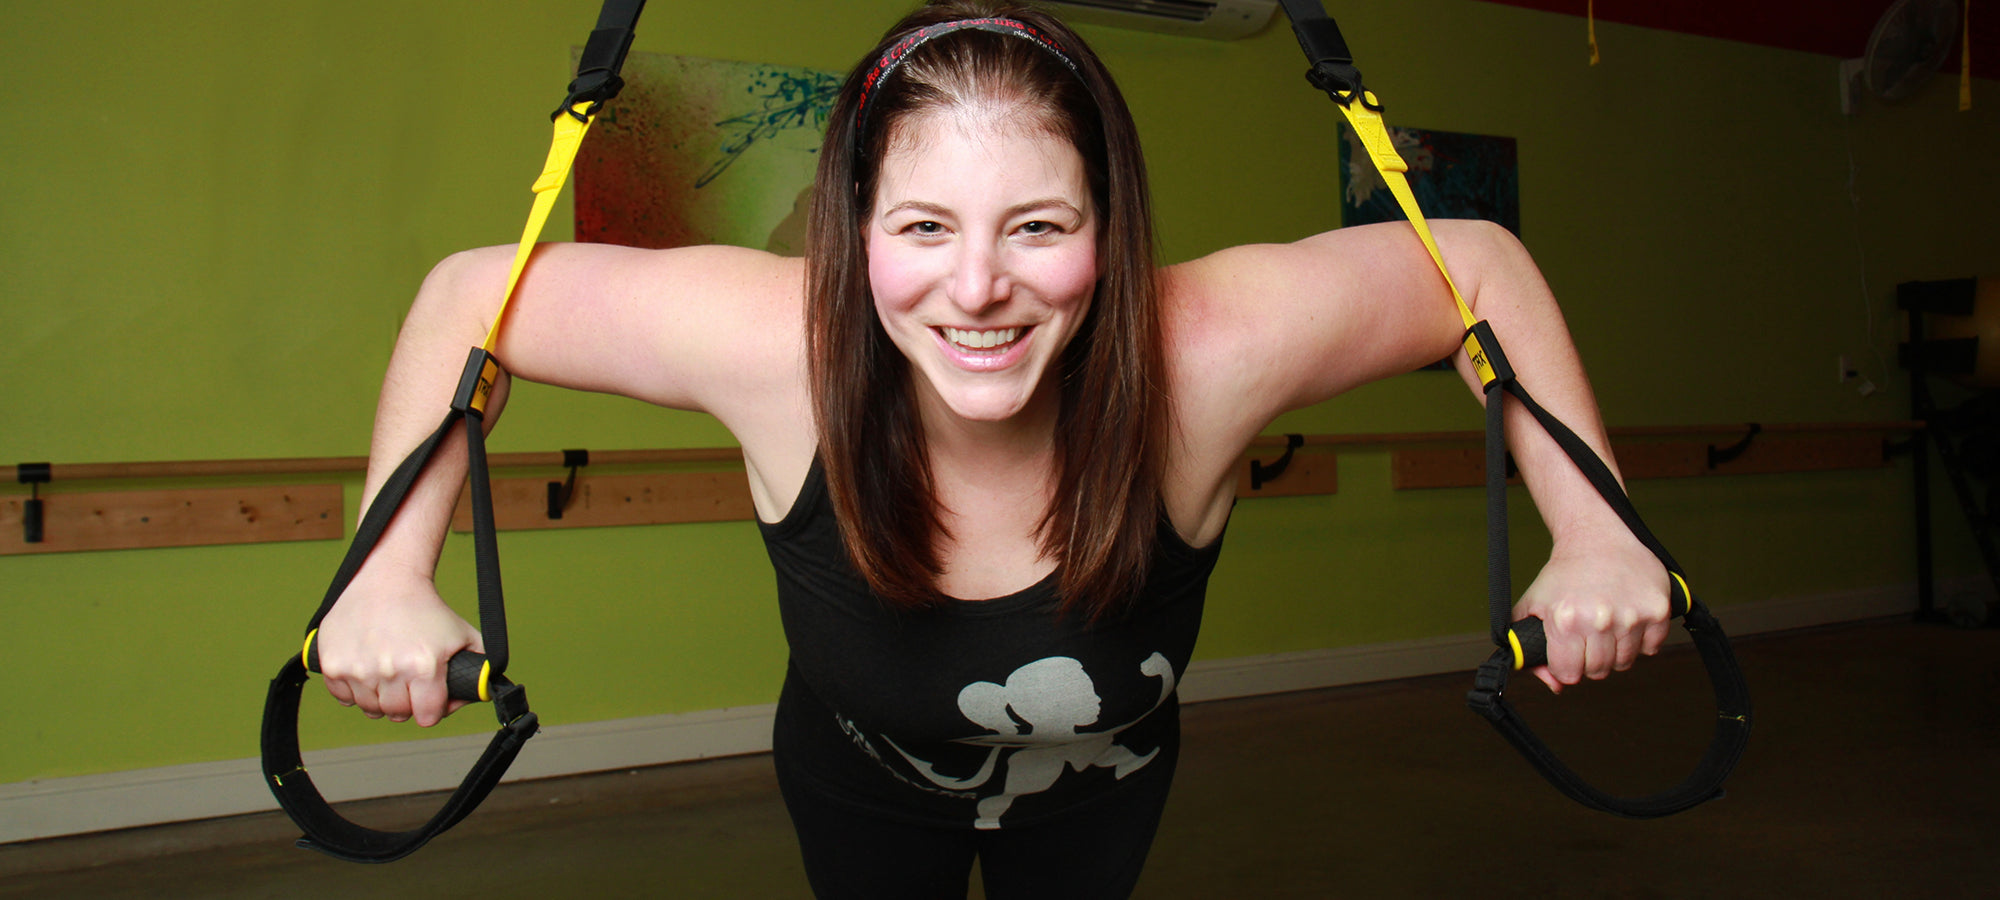 Mallory Cislo, Positively Fit Lake Highlands, Superfit Hero sponsored trainer